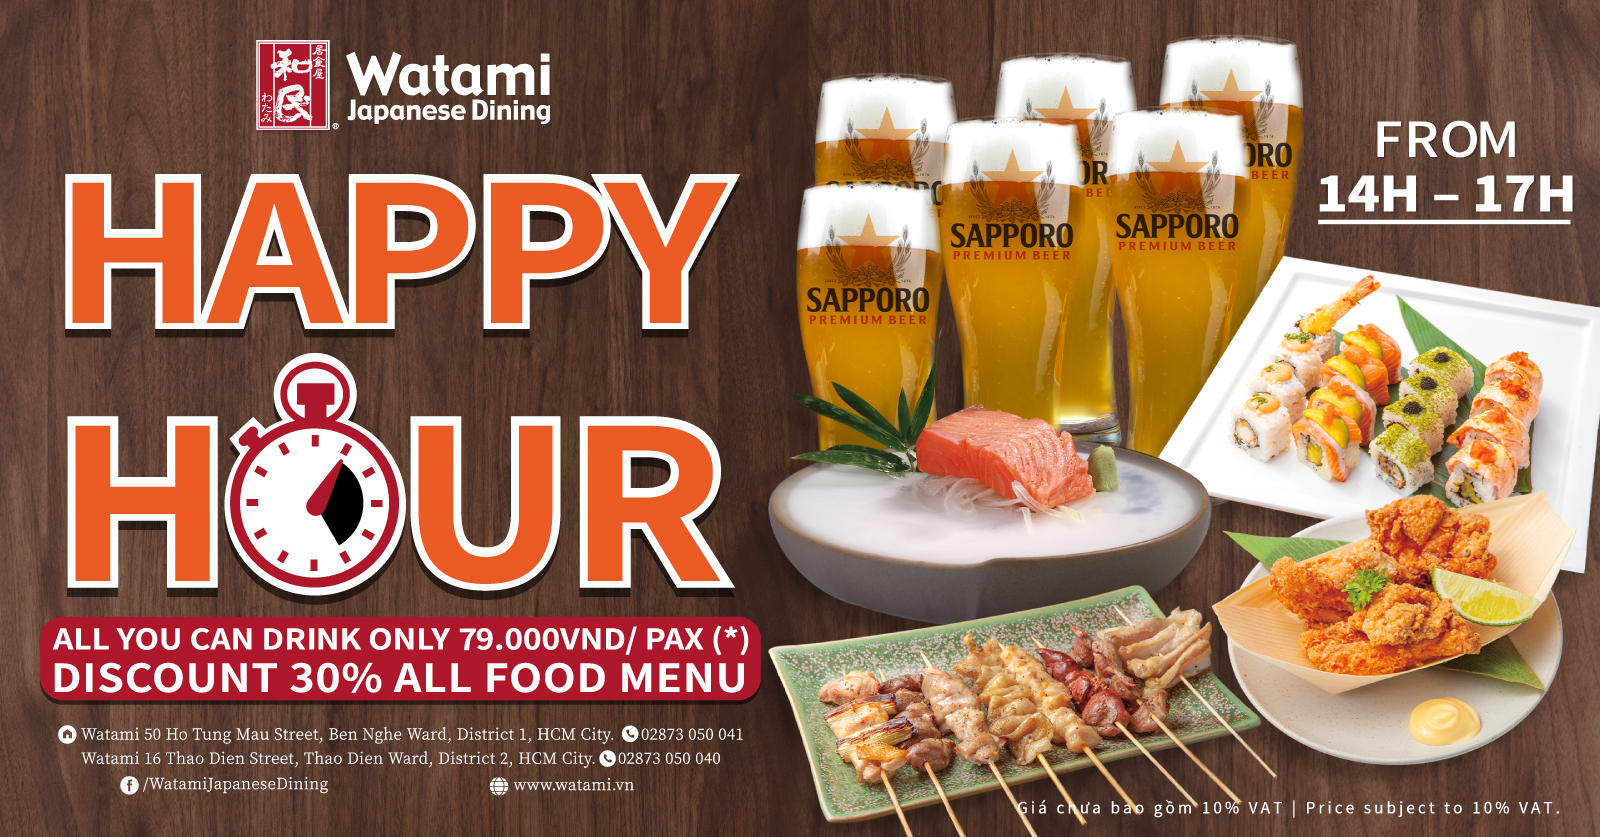 Happy hour - All you can drink only 79K/Pax at Watami Japanese Dining